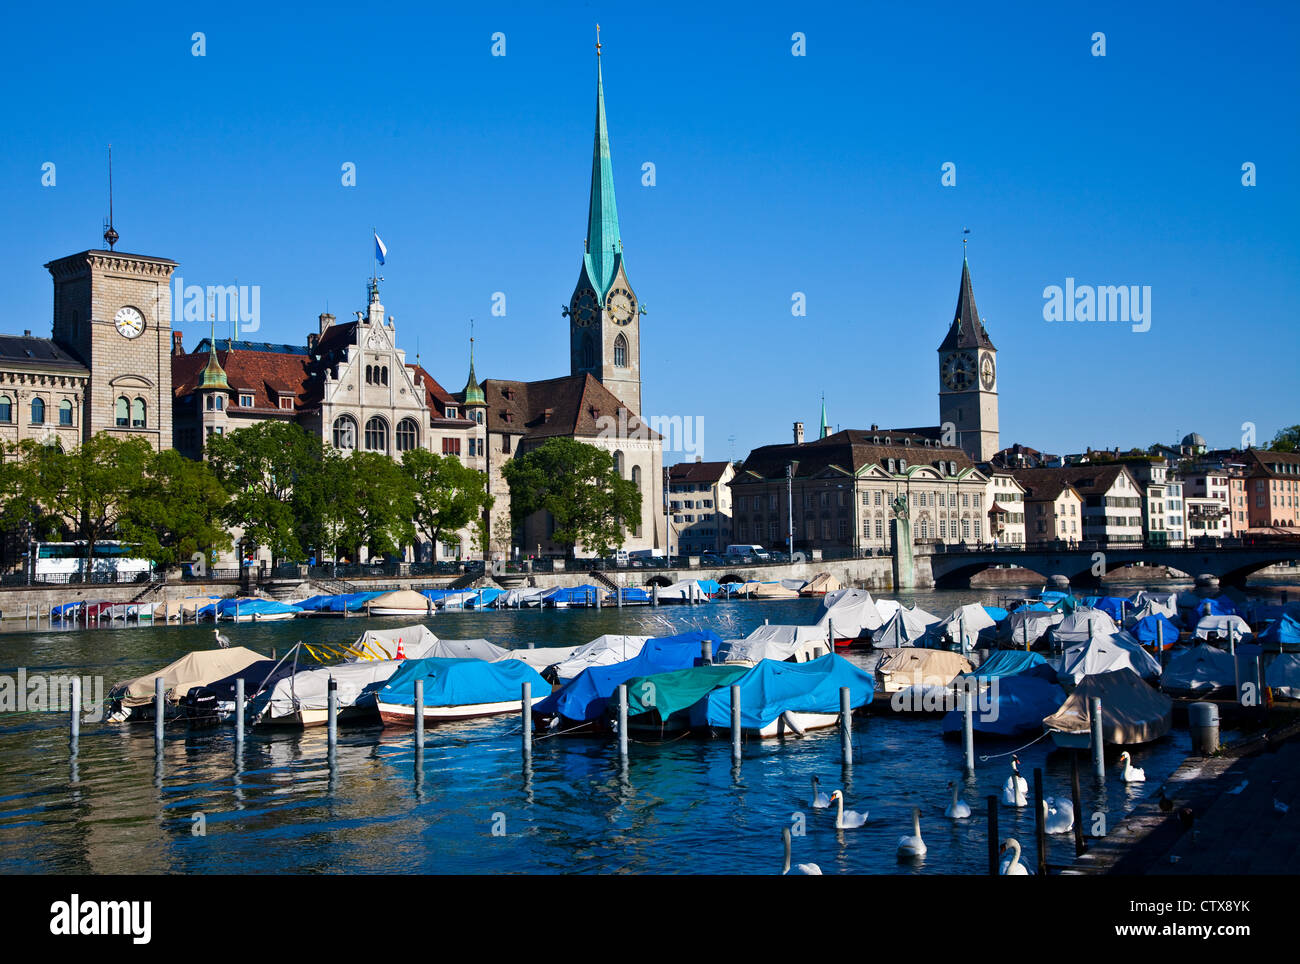 A view of Zurich across the Limmat river, Switzerland - Stock Image